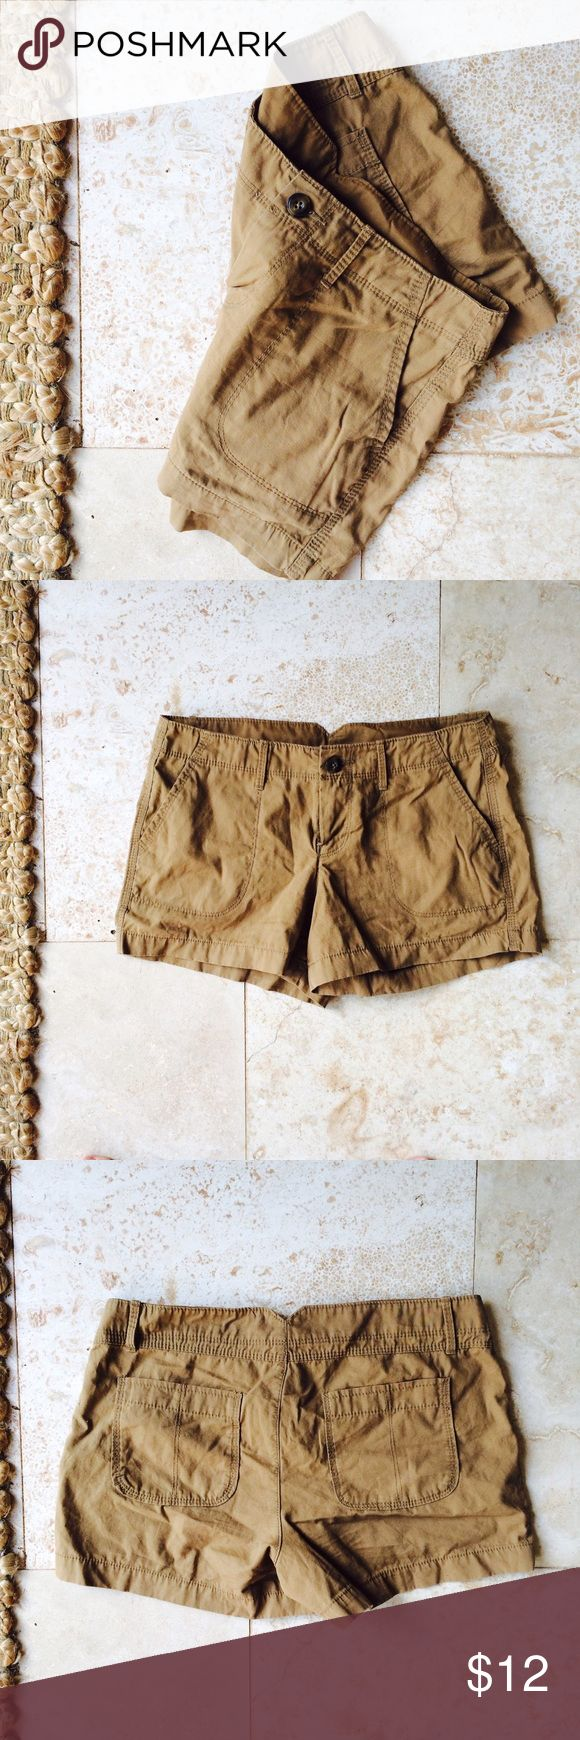 🌿simple brown shorts •in awesome condition •only been worn once •size 2 •brand: Old Navy Old Navy Shorts